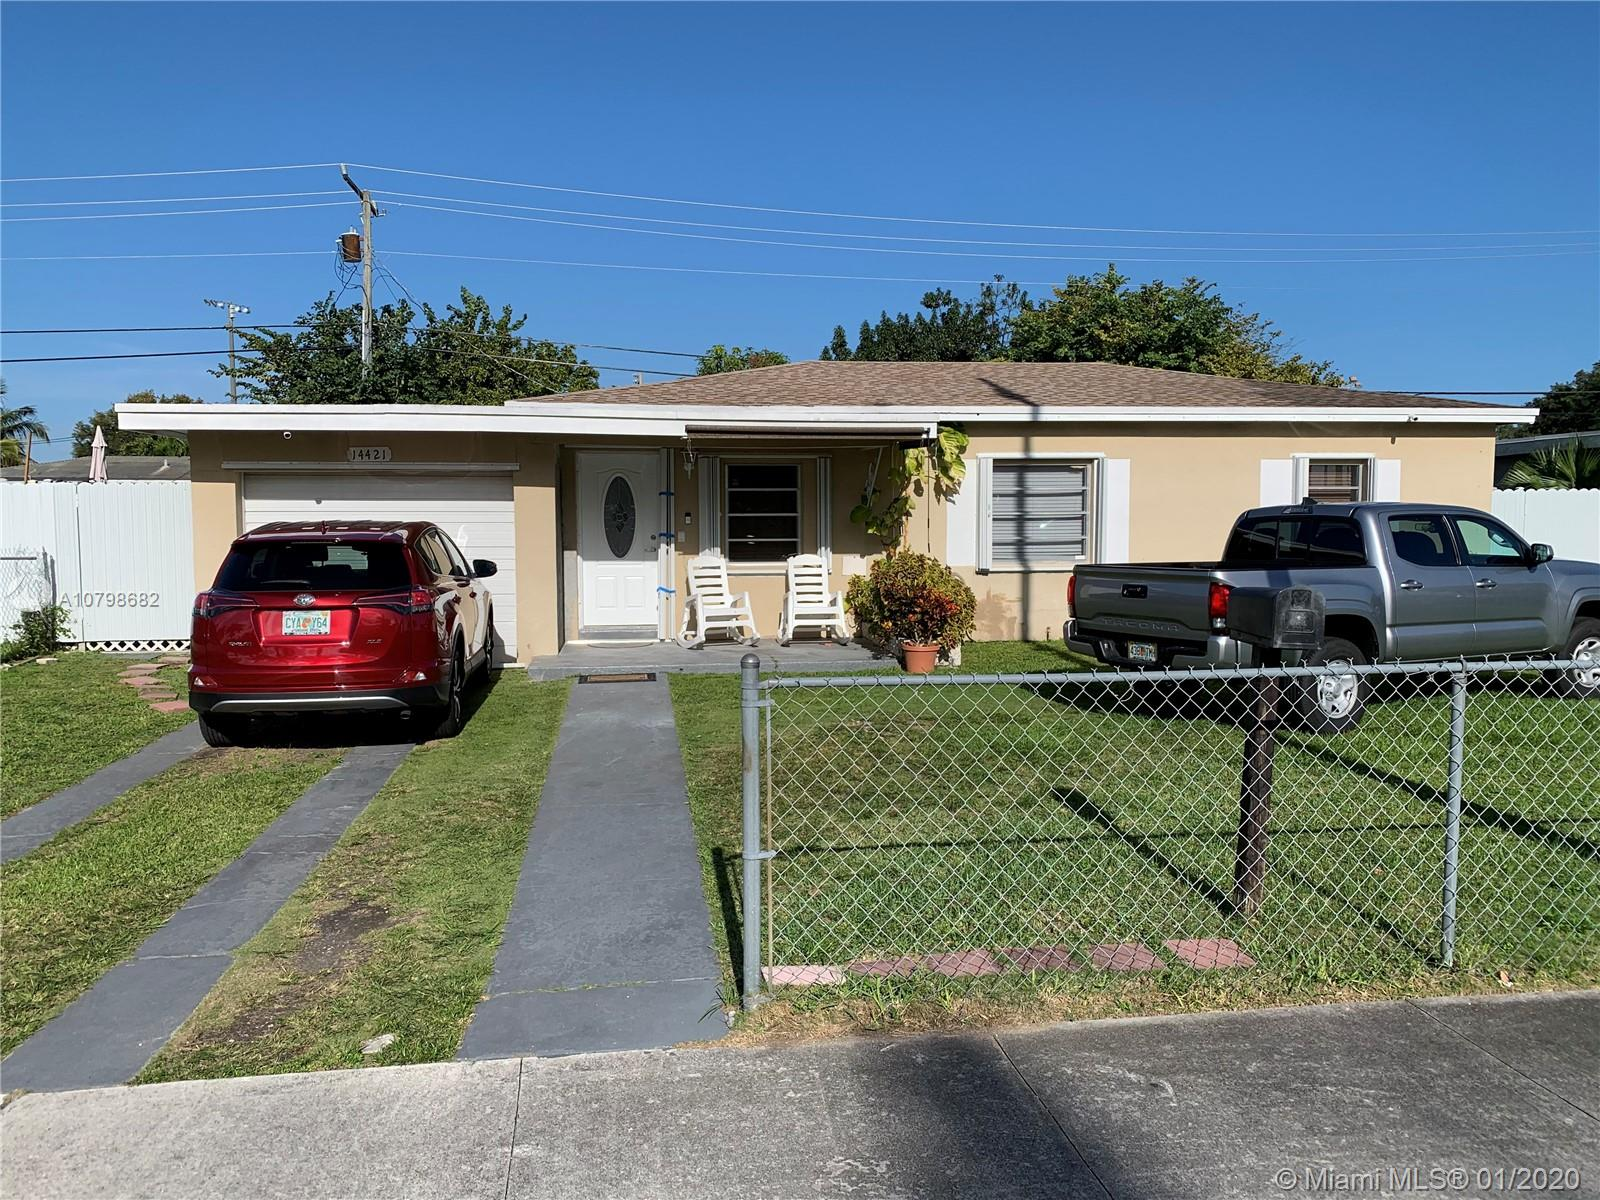 14421 Lincoln Blvd, Kendall in Miami-dade County County, FL 33176 Home for Sale